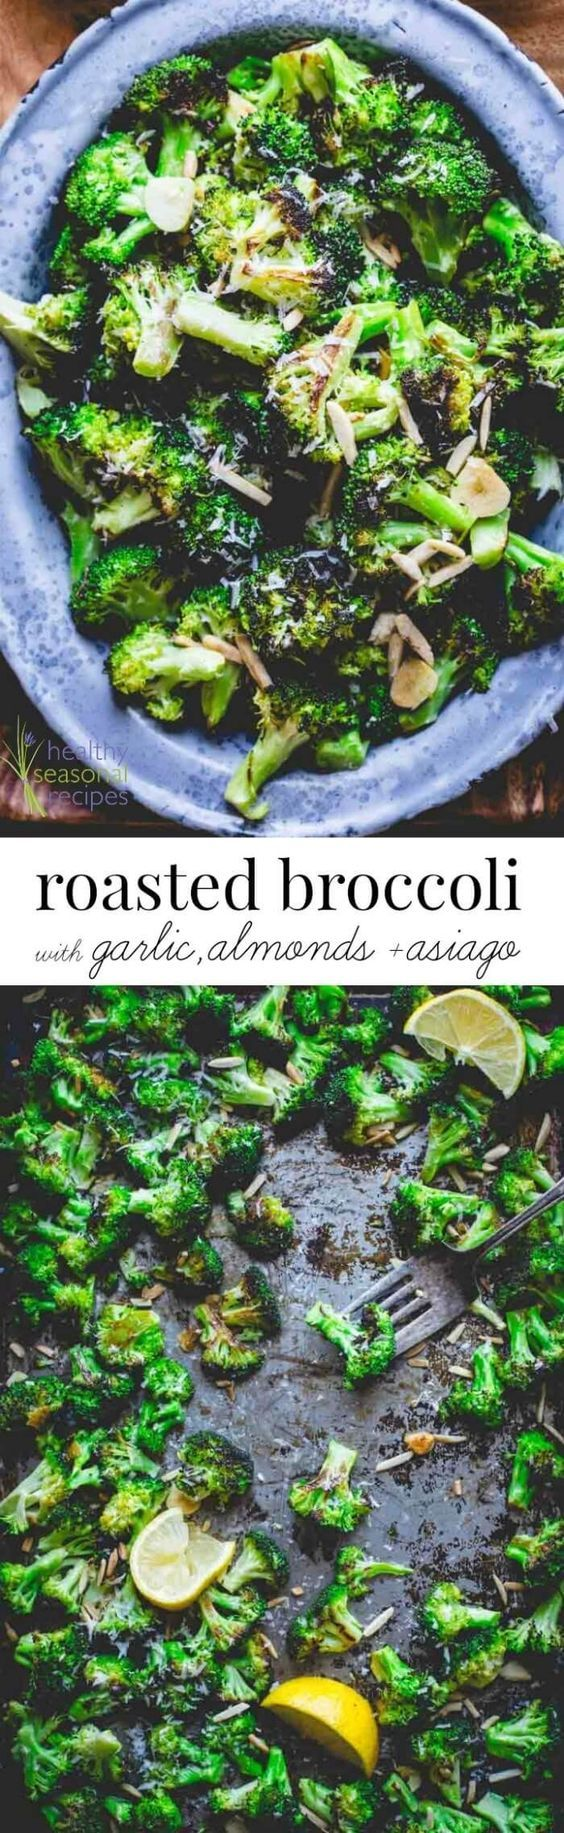 The brightness of the lemon the tangy creaminess of the asiago and the crunchy almonds pair perfectly with the caramelized crispy broccoli making this an elegant yet simple side dish. Perfect for entertaining or for a weeknight dinner!